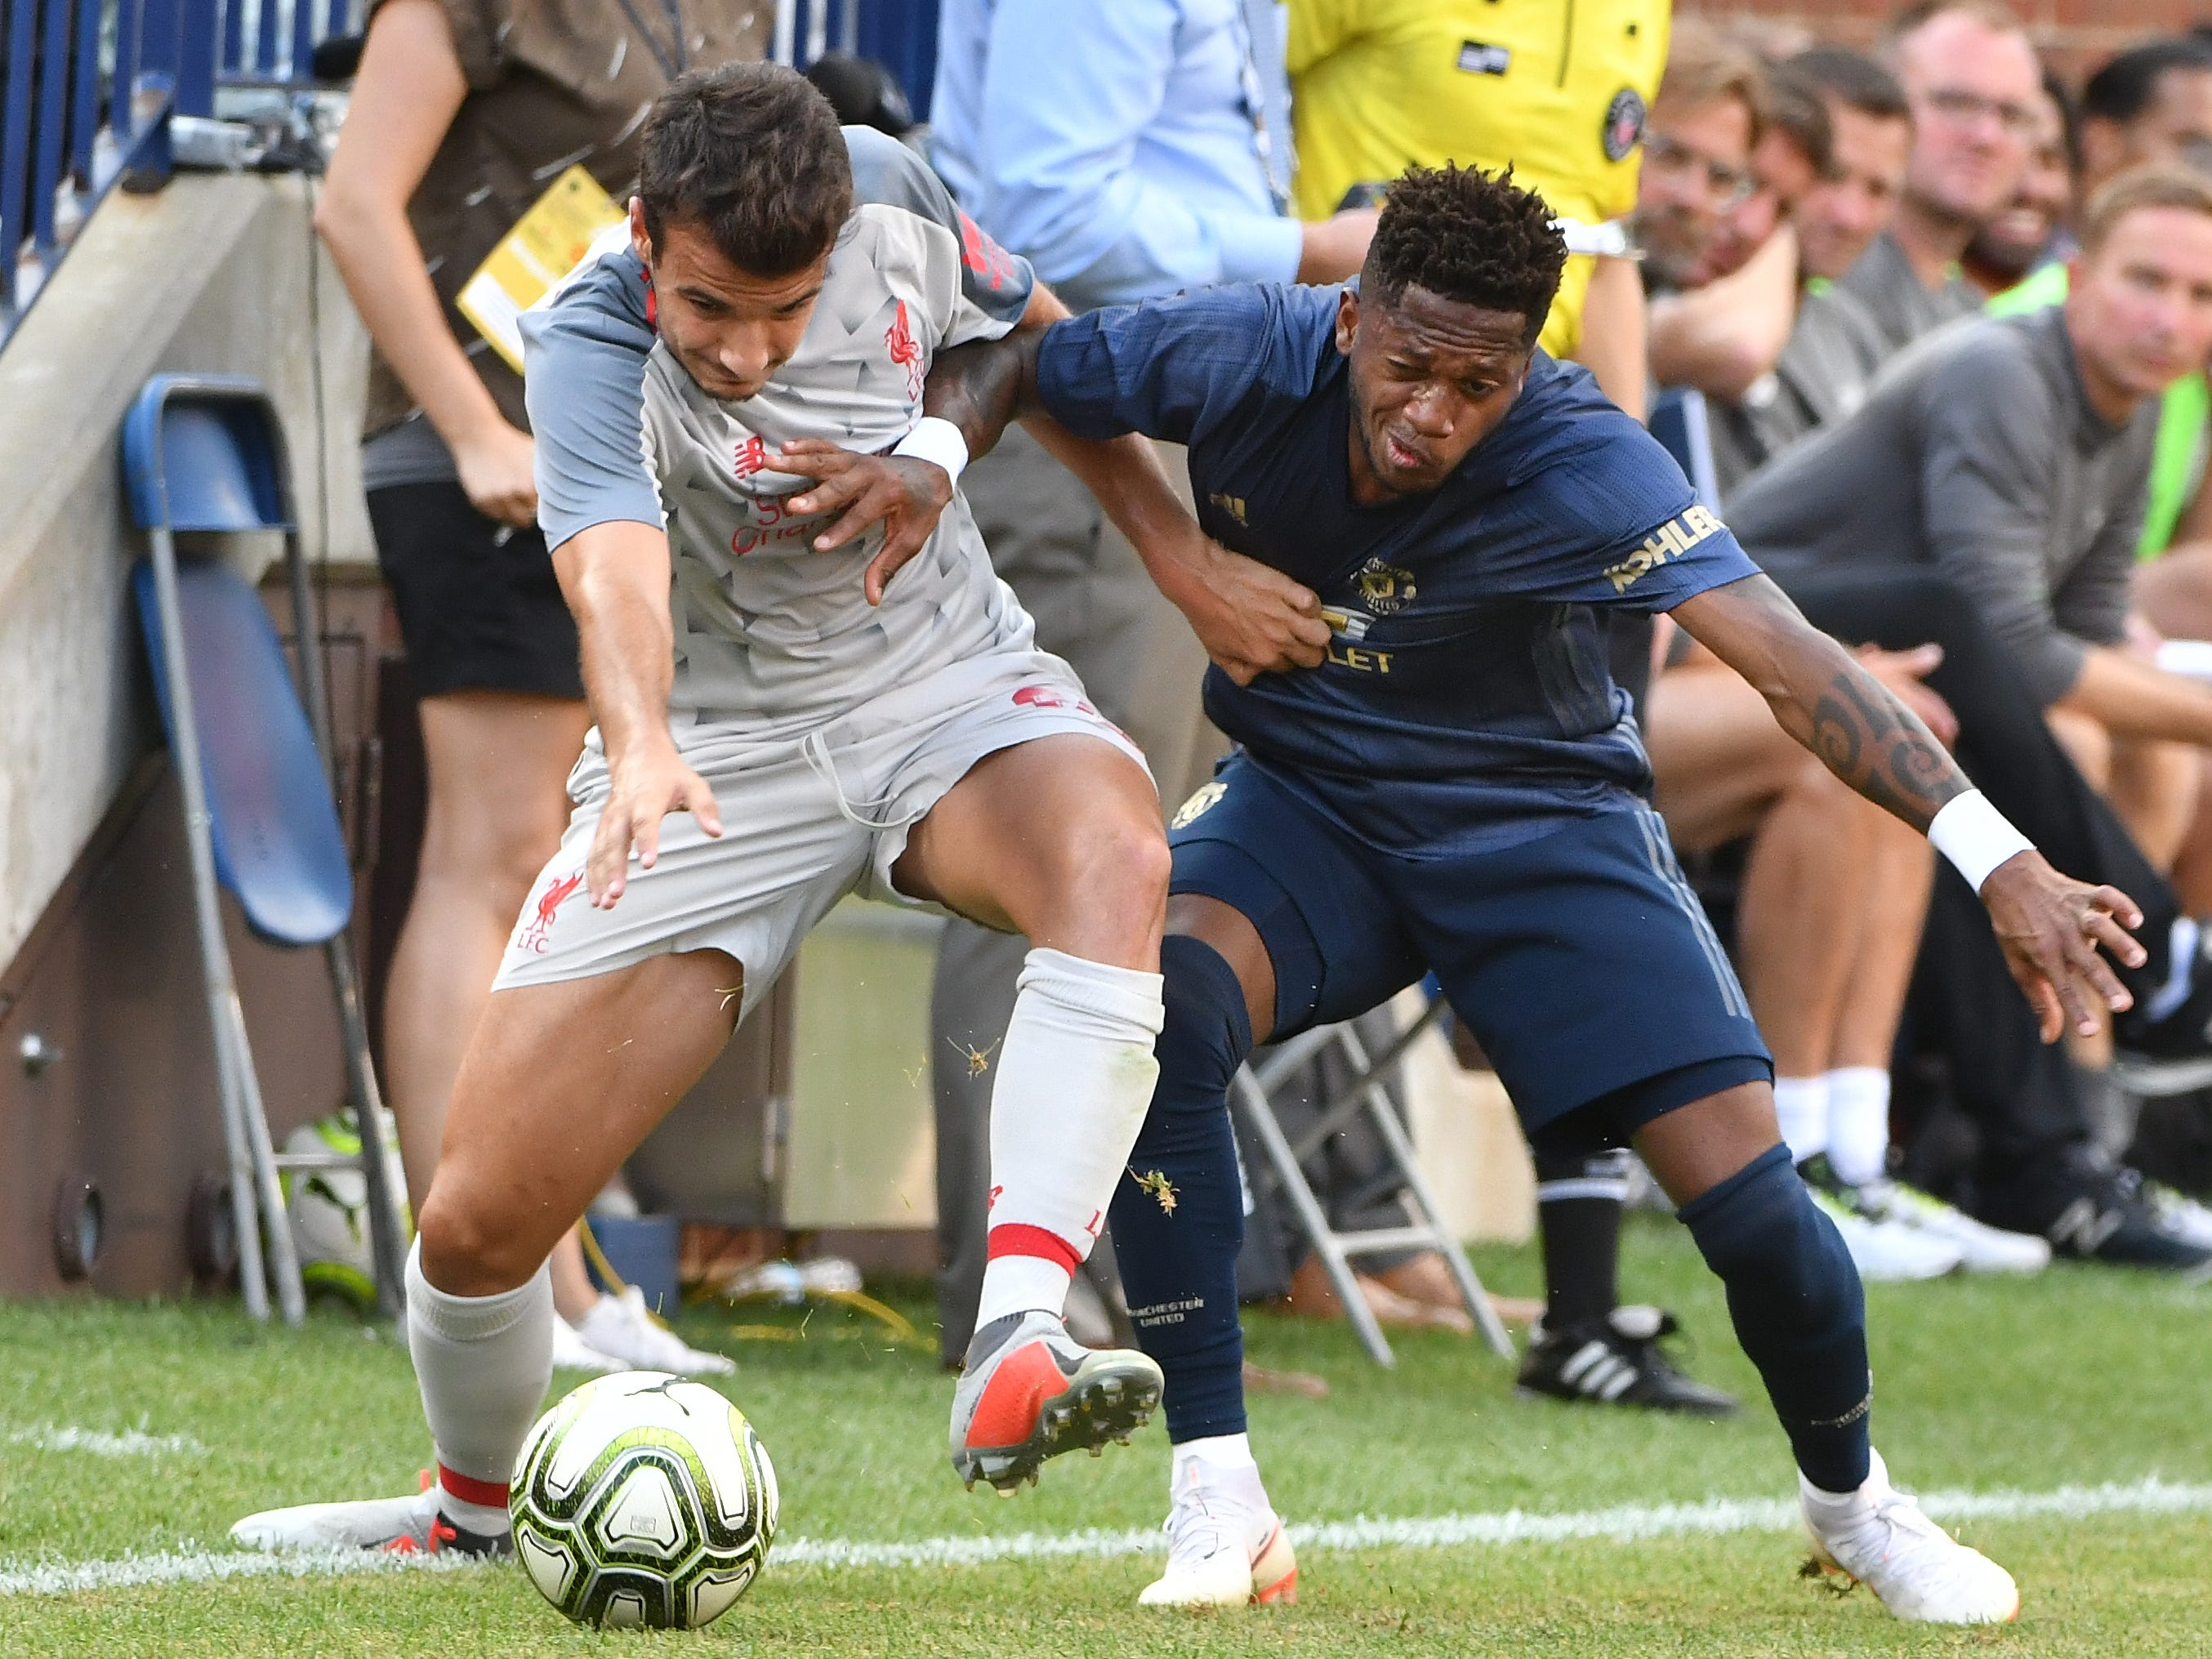 Liverpool's Pedro Chirivella and Manchester's Anthony Martial mix it up chasing a ball down the sidline in the second half.